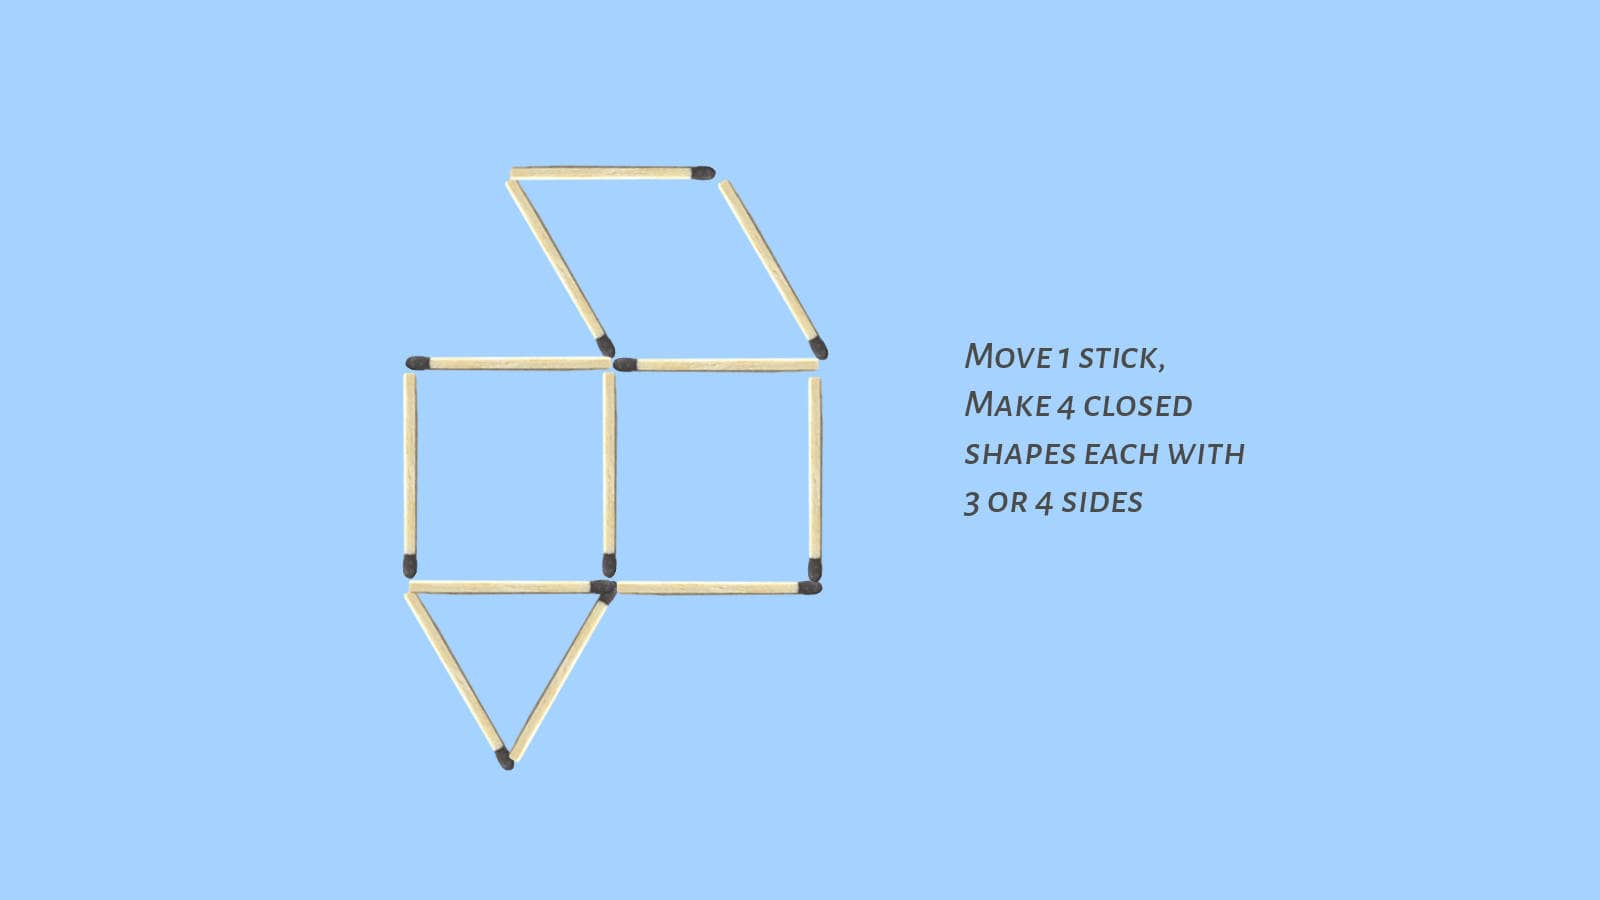 Move 1 to make 4 closed shapes of 3 or 4 sides